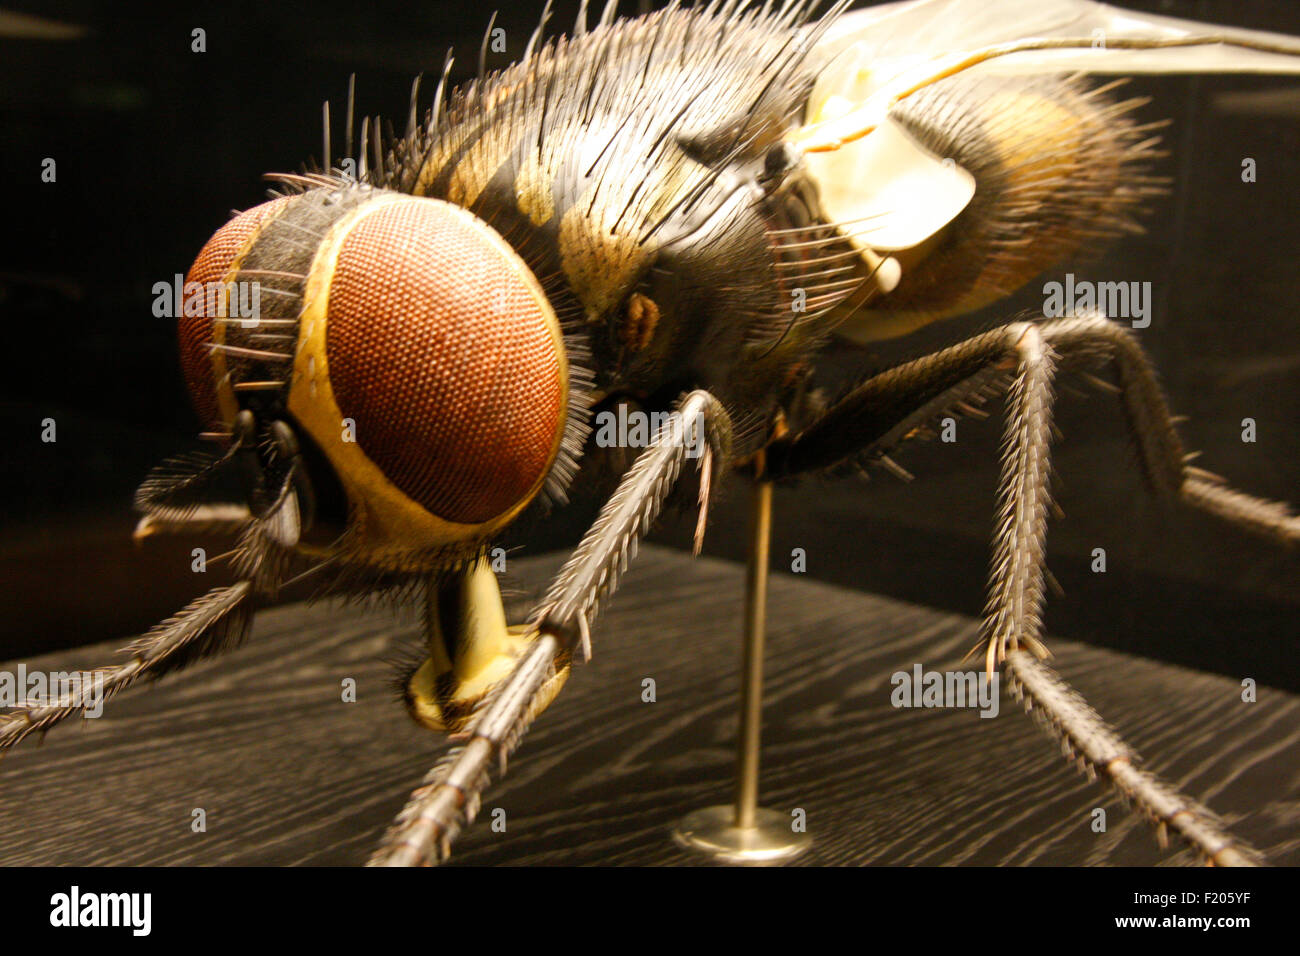 Insect Museum Stockfotos & Insect Museum Bilder - Alamy